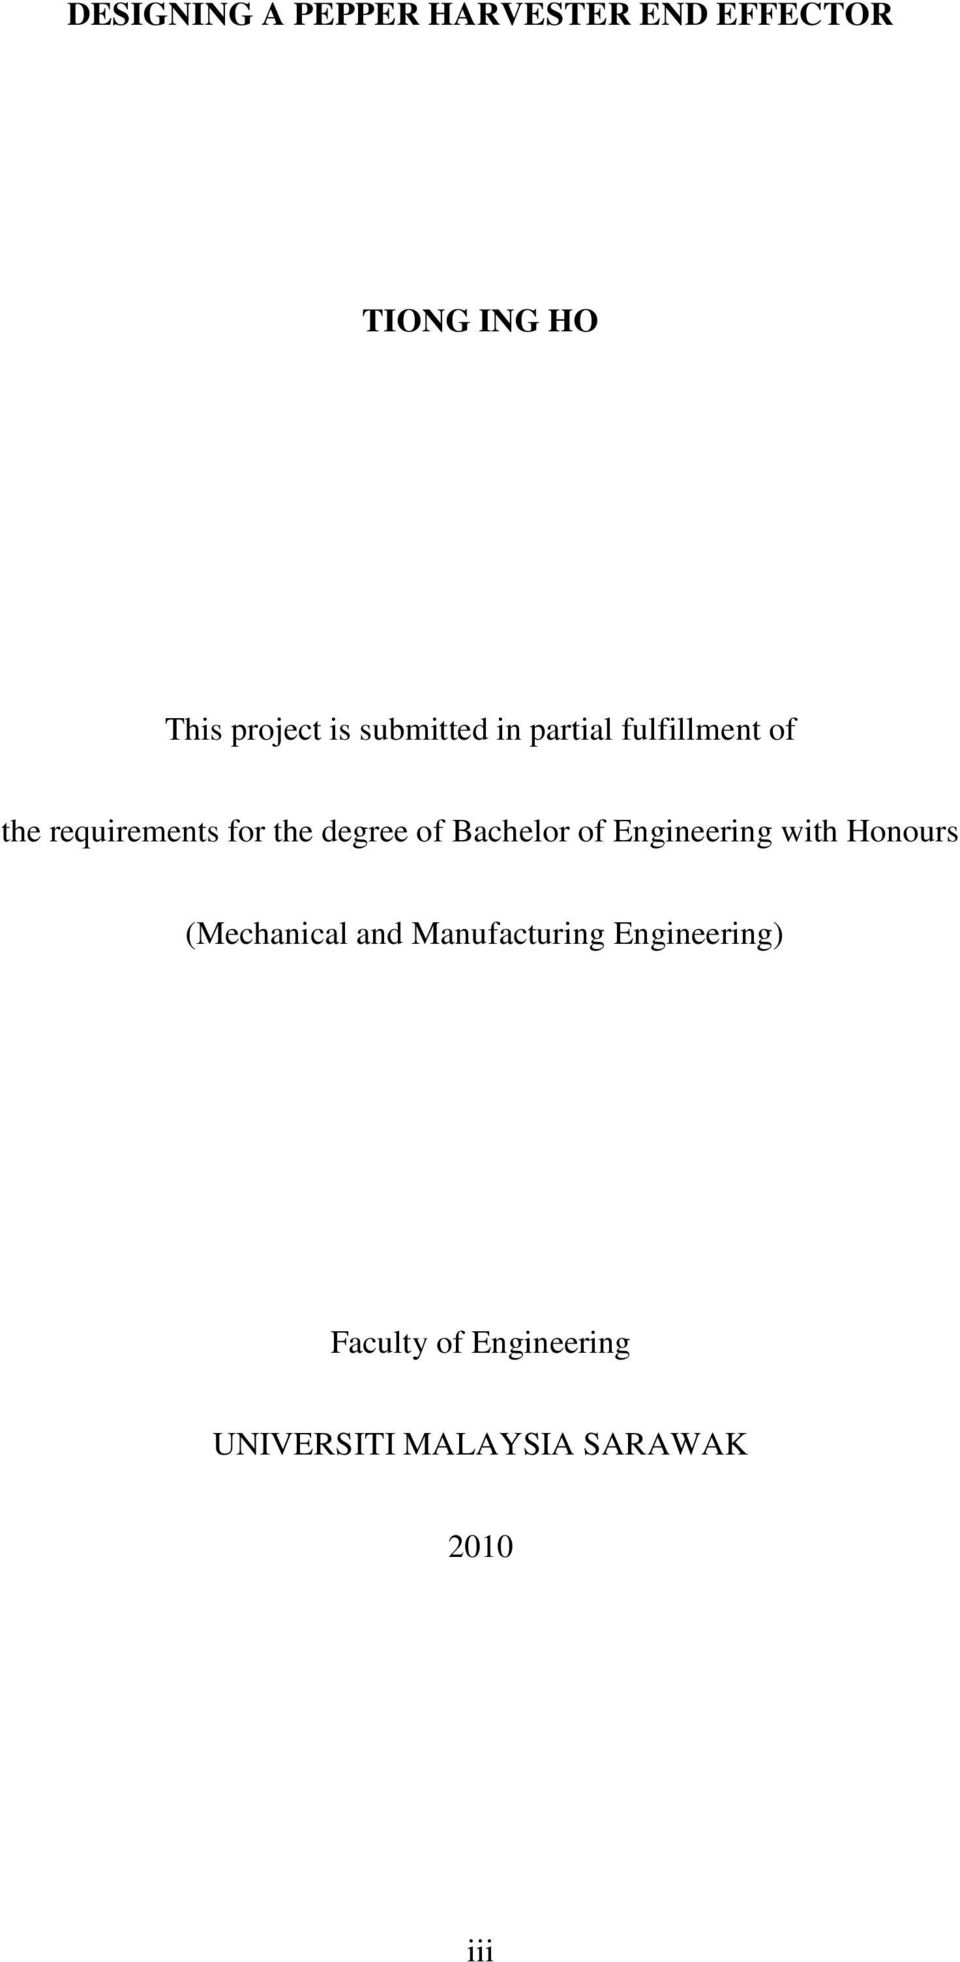 Bachelor of Engineering with Honours (Mechanical and Manufacturing